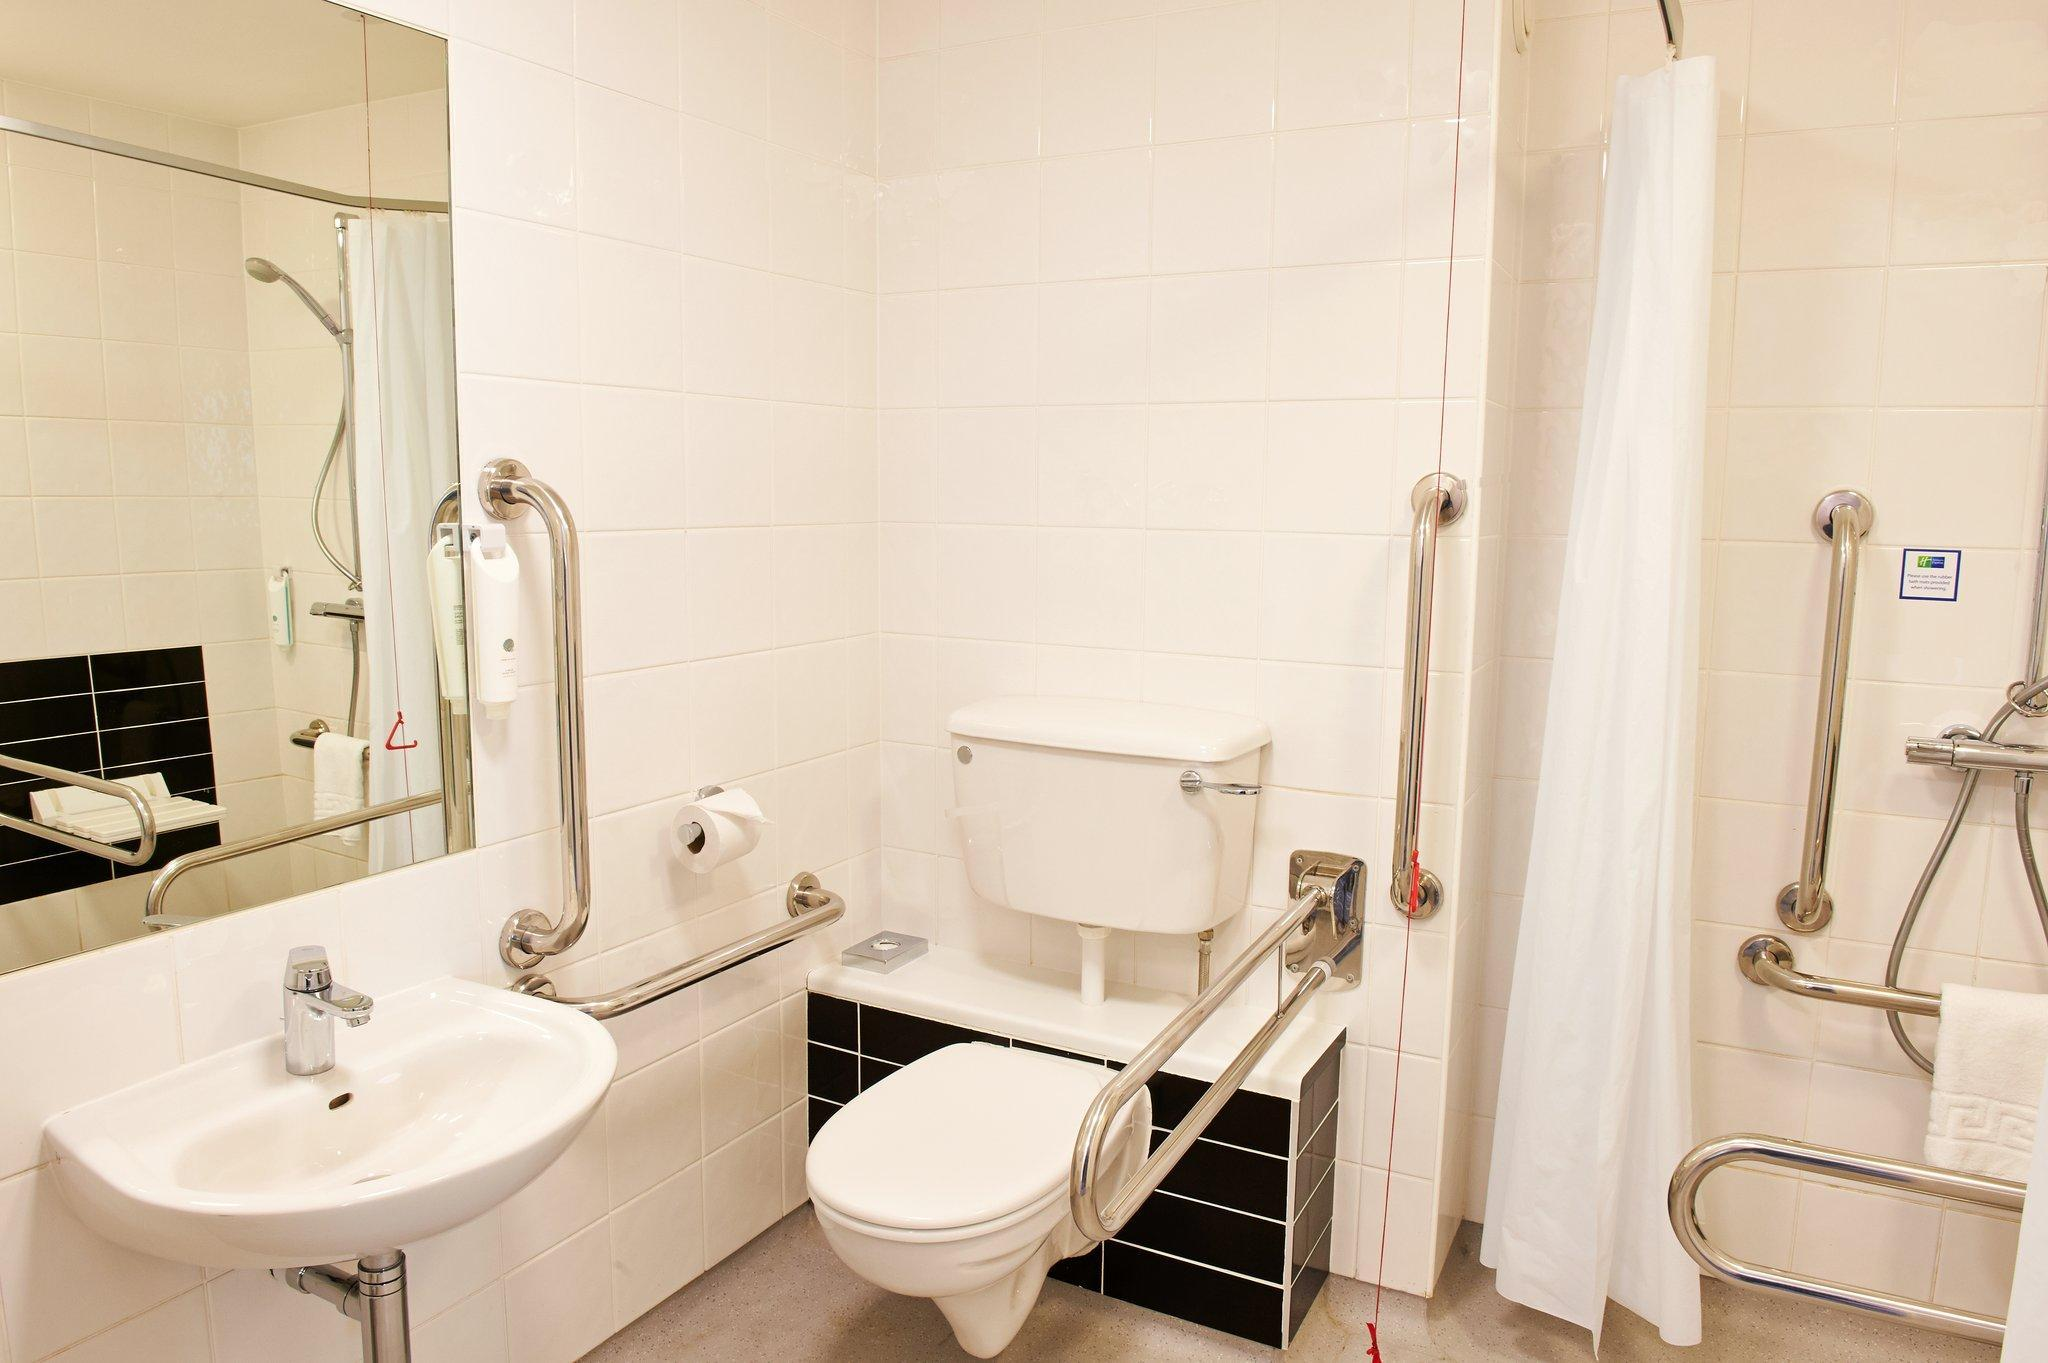 1 Bedroom Accessible Roll In Shower Non-Smoking